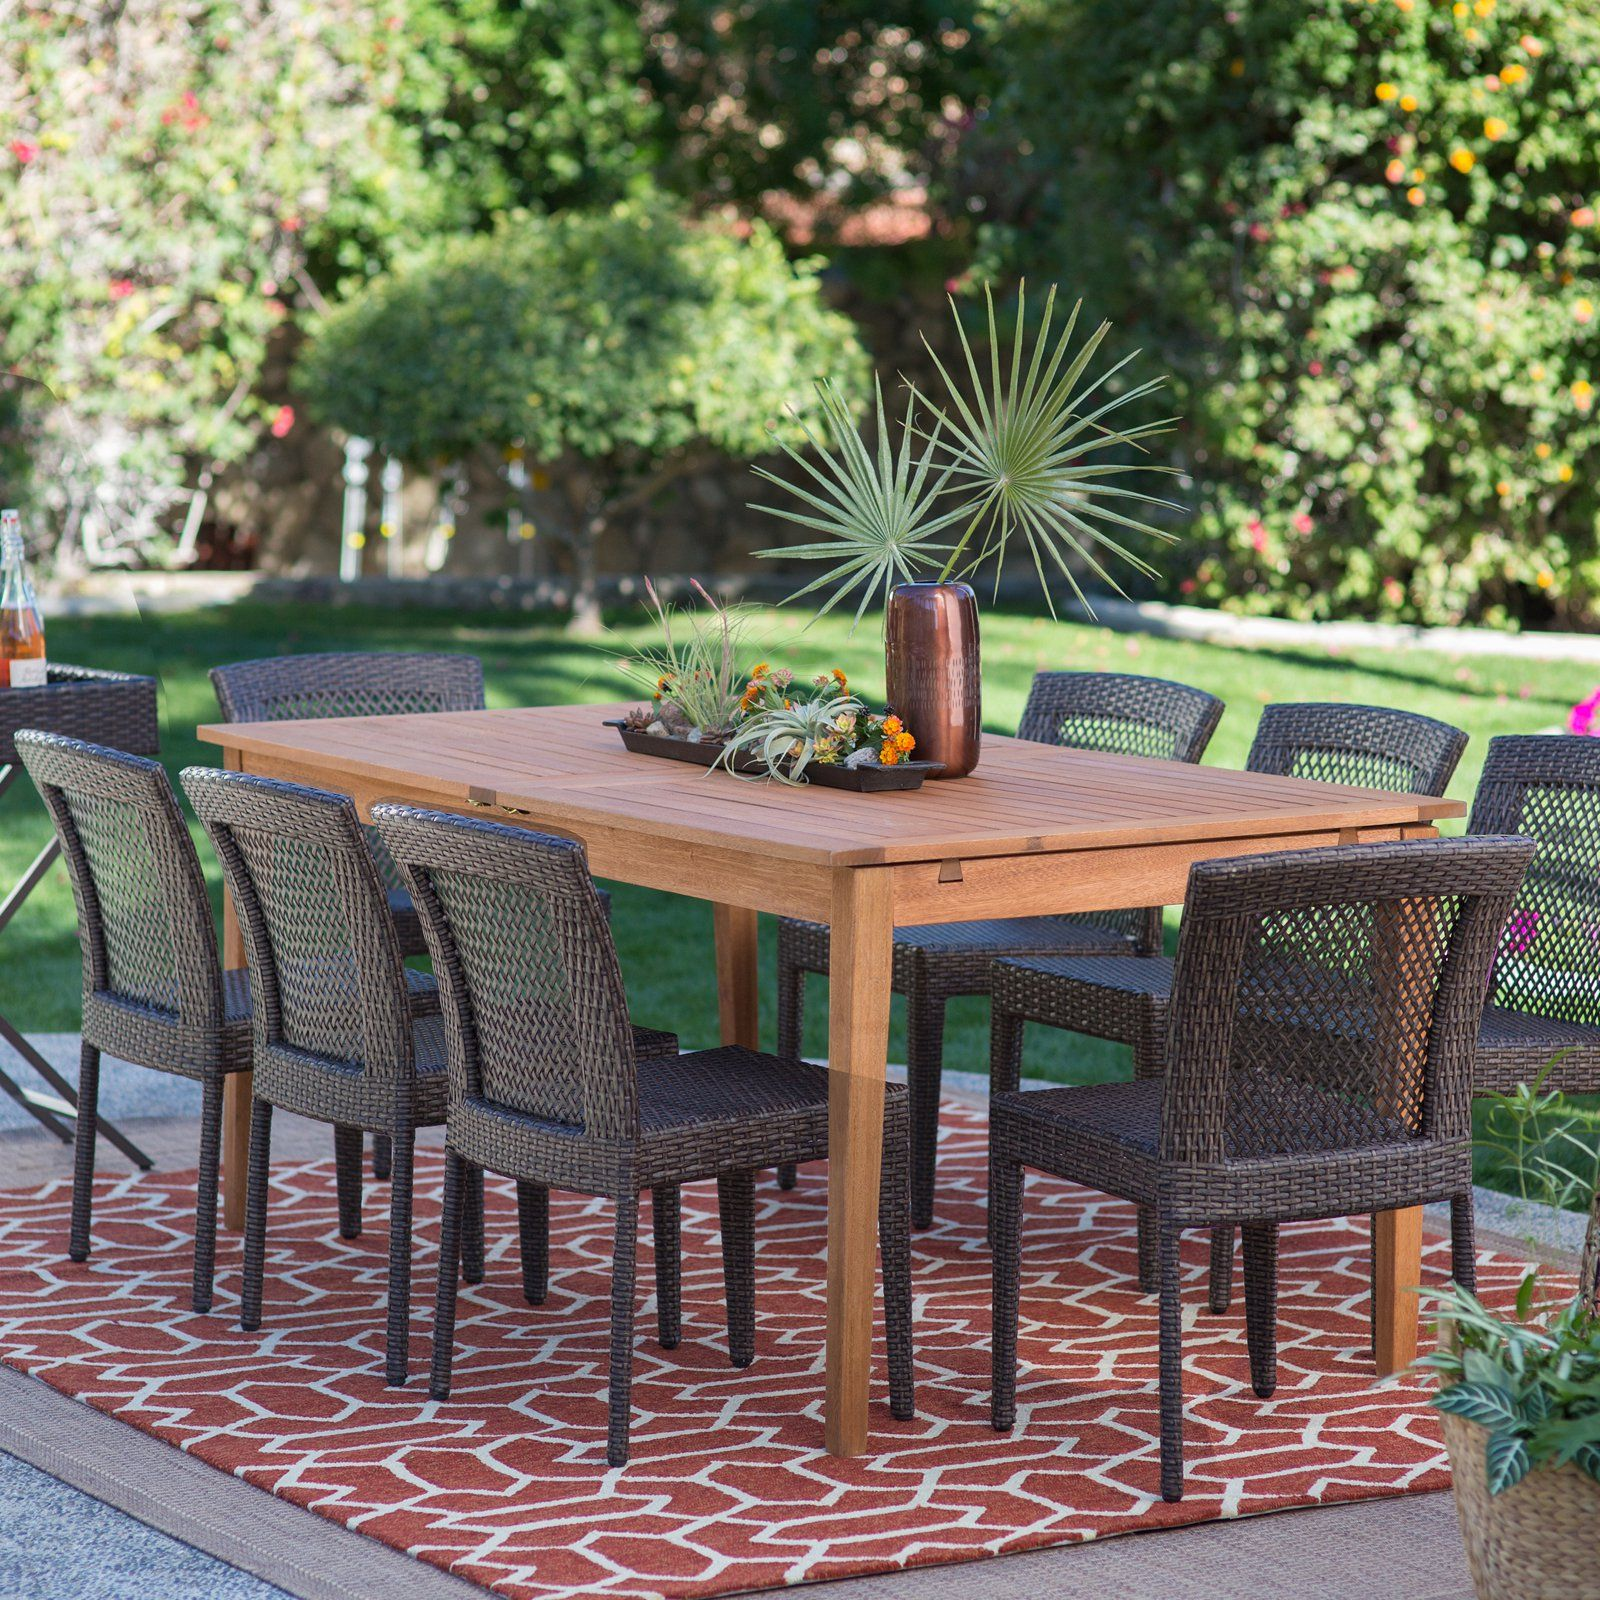 Belham Living Brisbane Outdoor Wood Extension Patio Dining Set ...